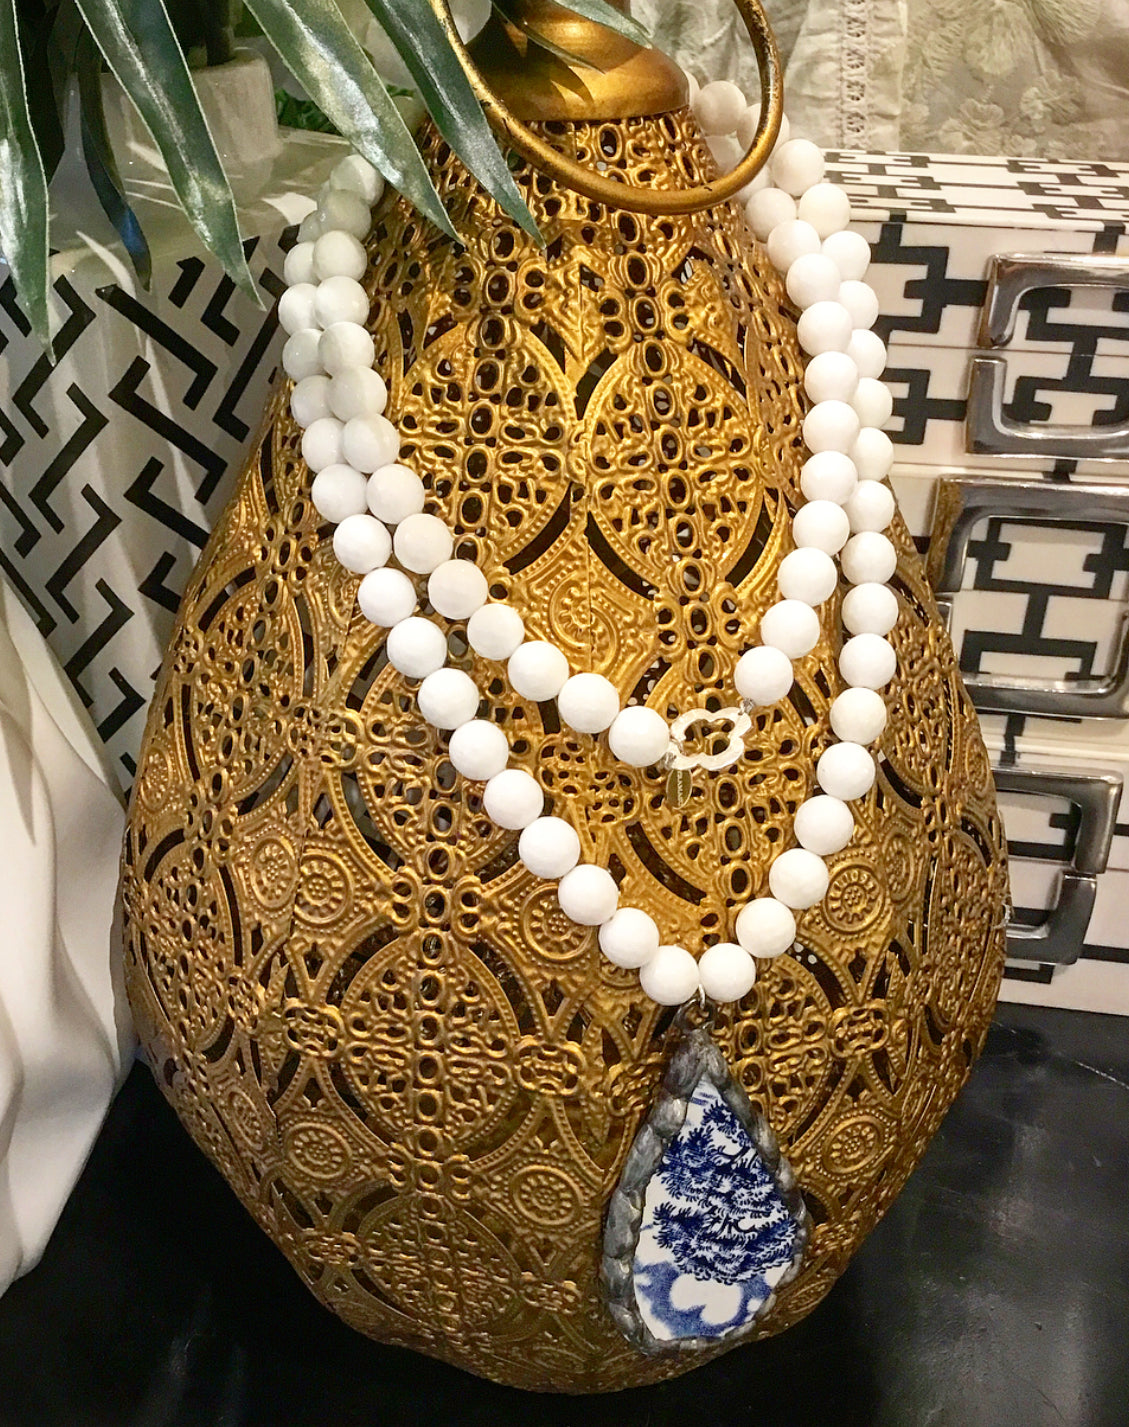 """Want It"" Wednesday: Gorgeous & New, Handmade Designer Teramasu White Agate Necklace with One-of-a-Kind Blue & White Porcelain Pendant"